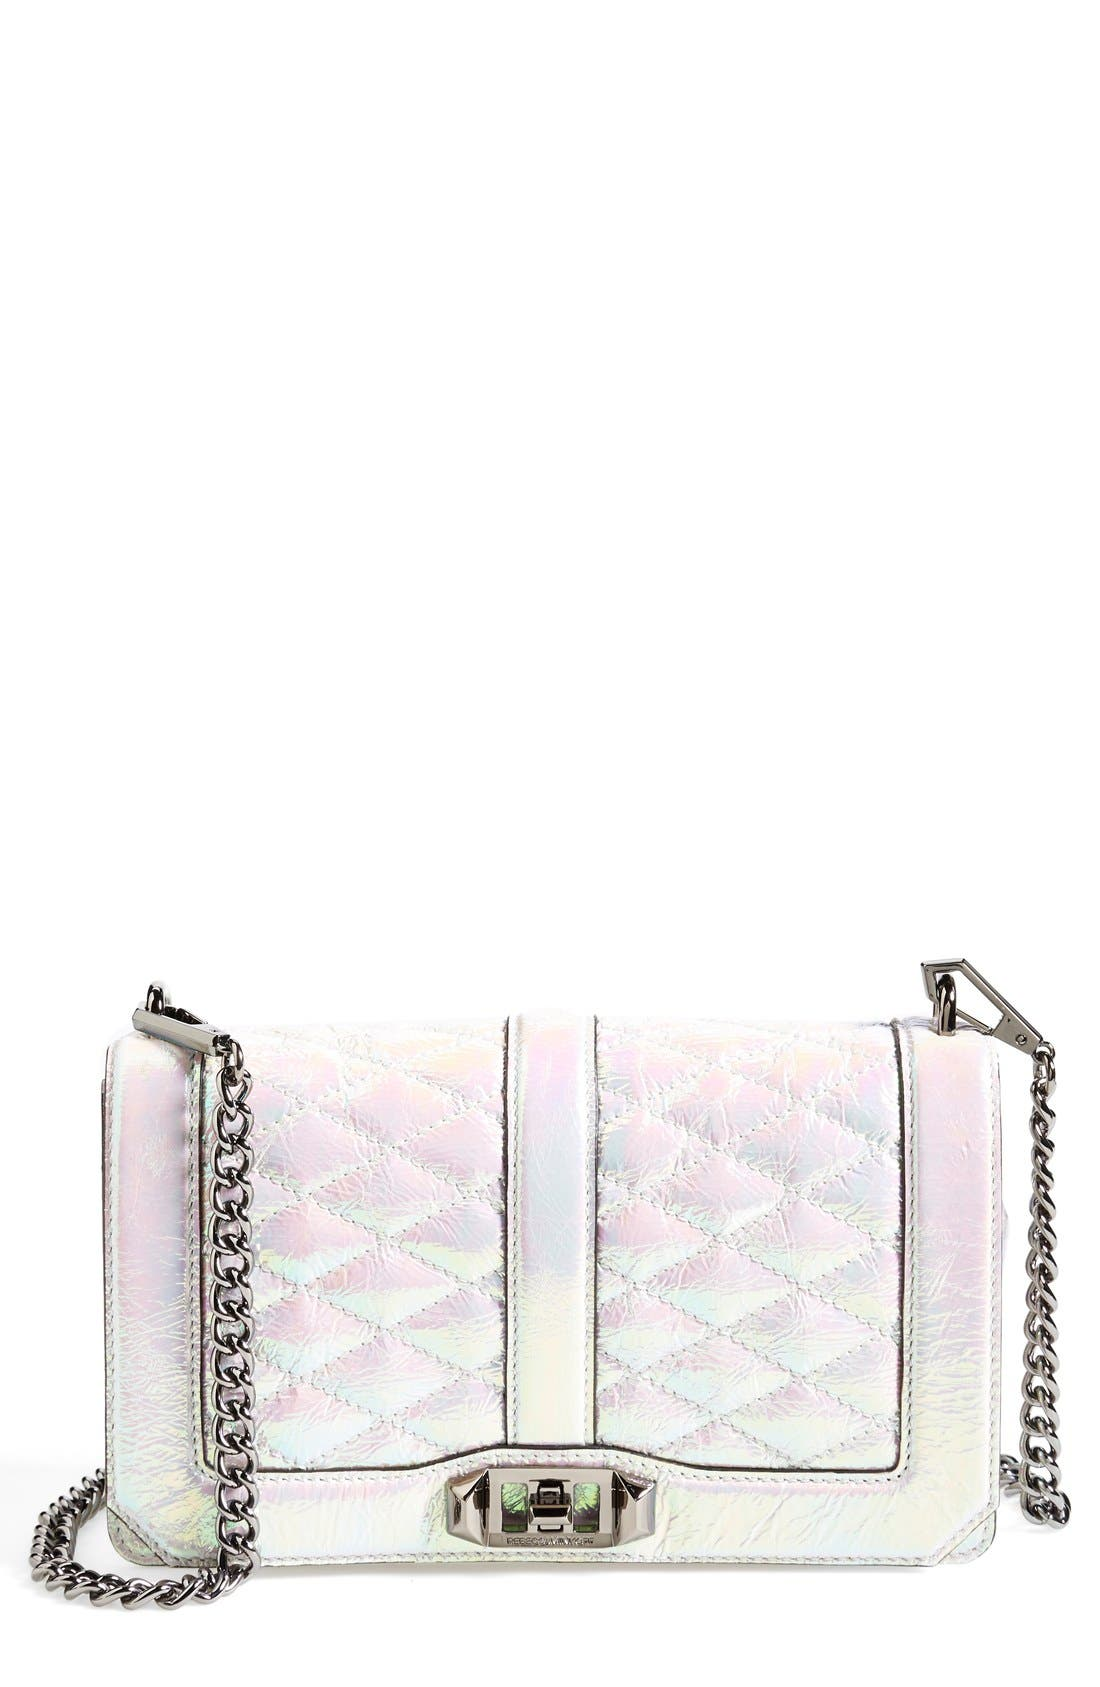 Main Image - Rebecca Minkoff 'Love' Crossbody Bag